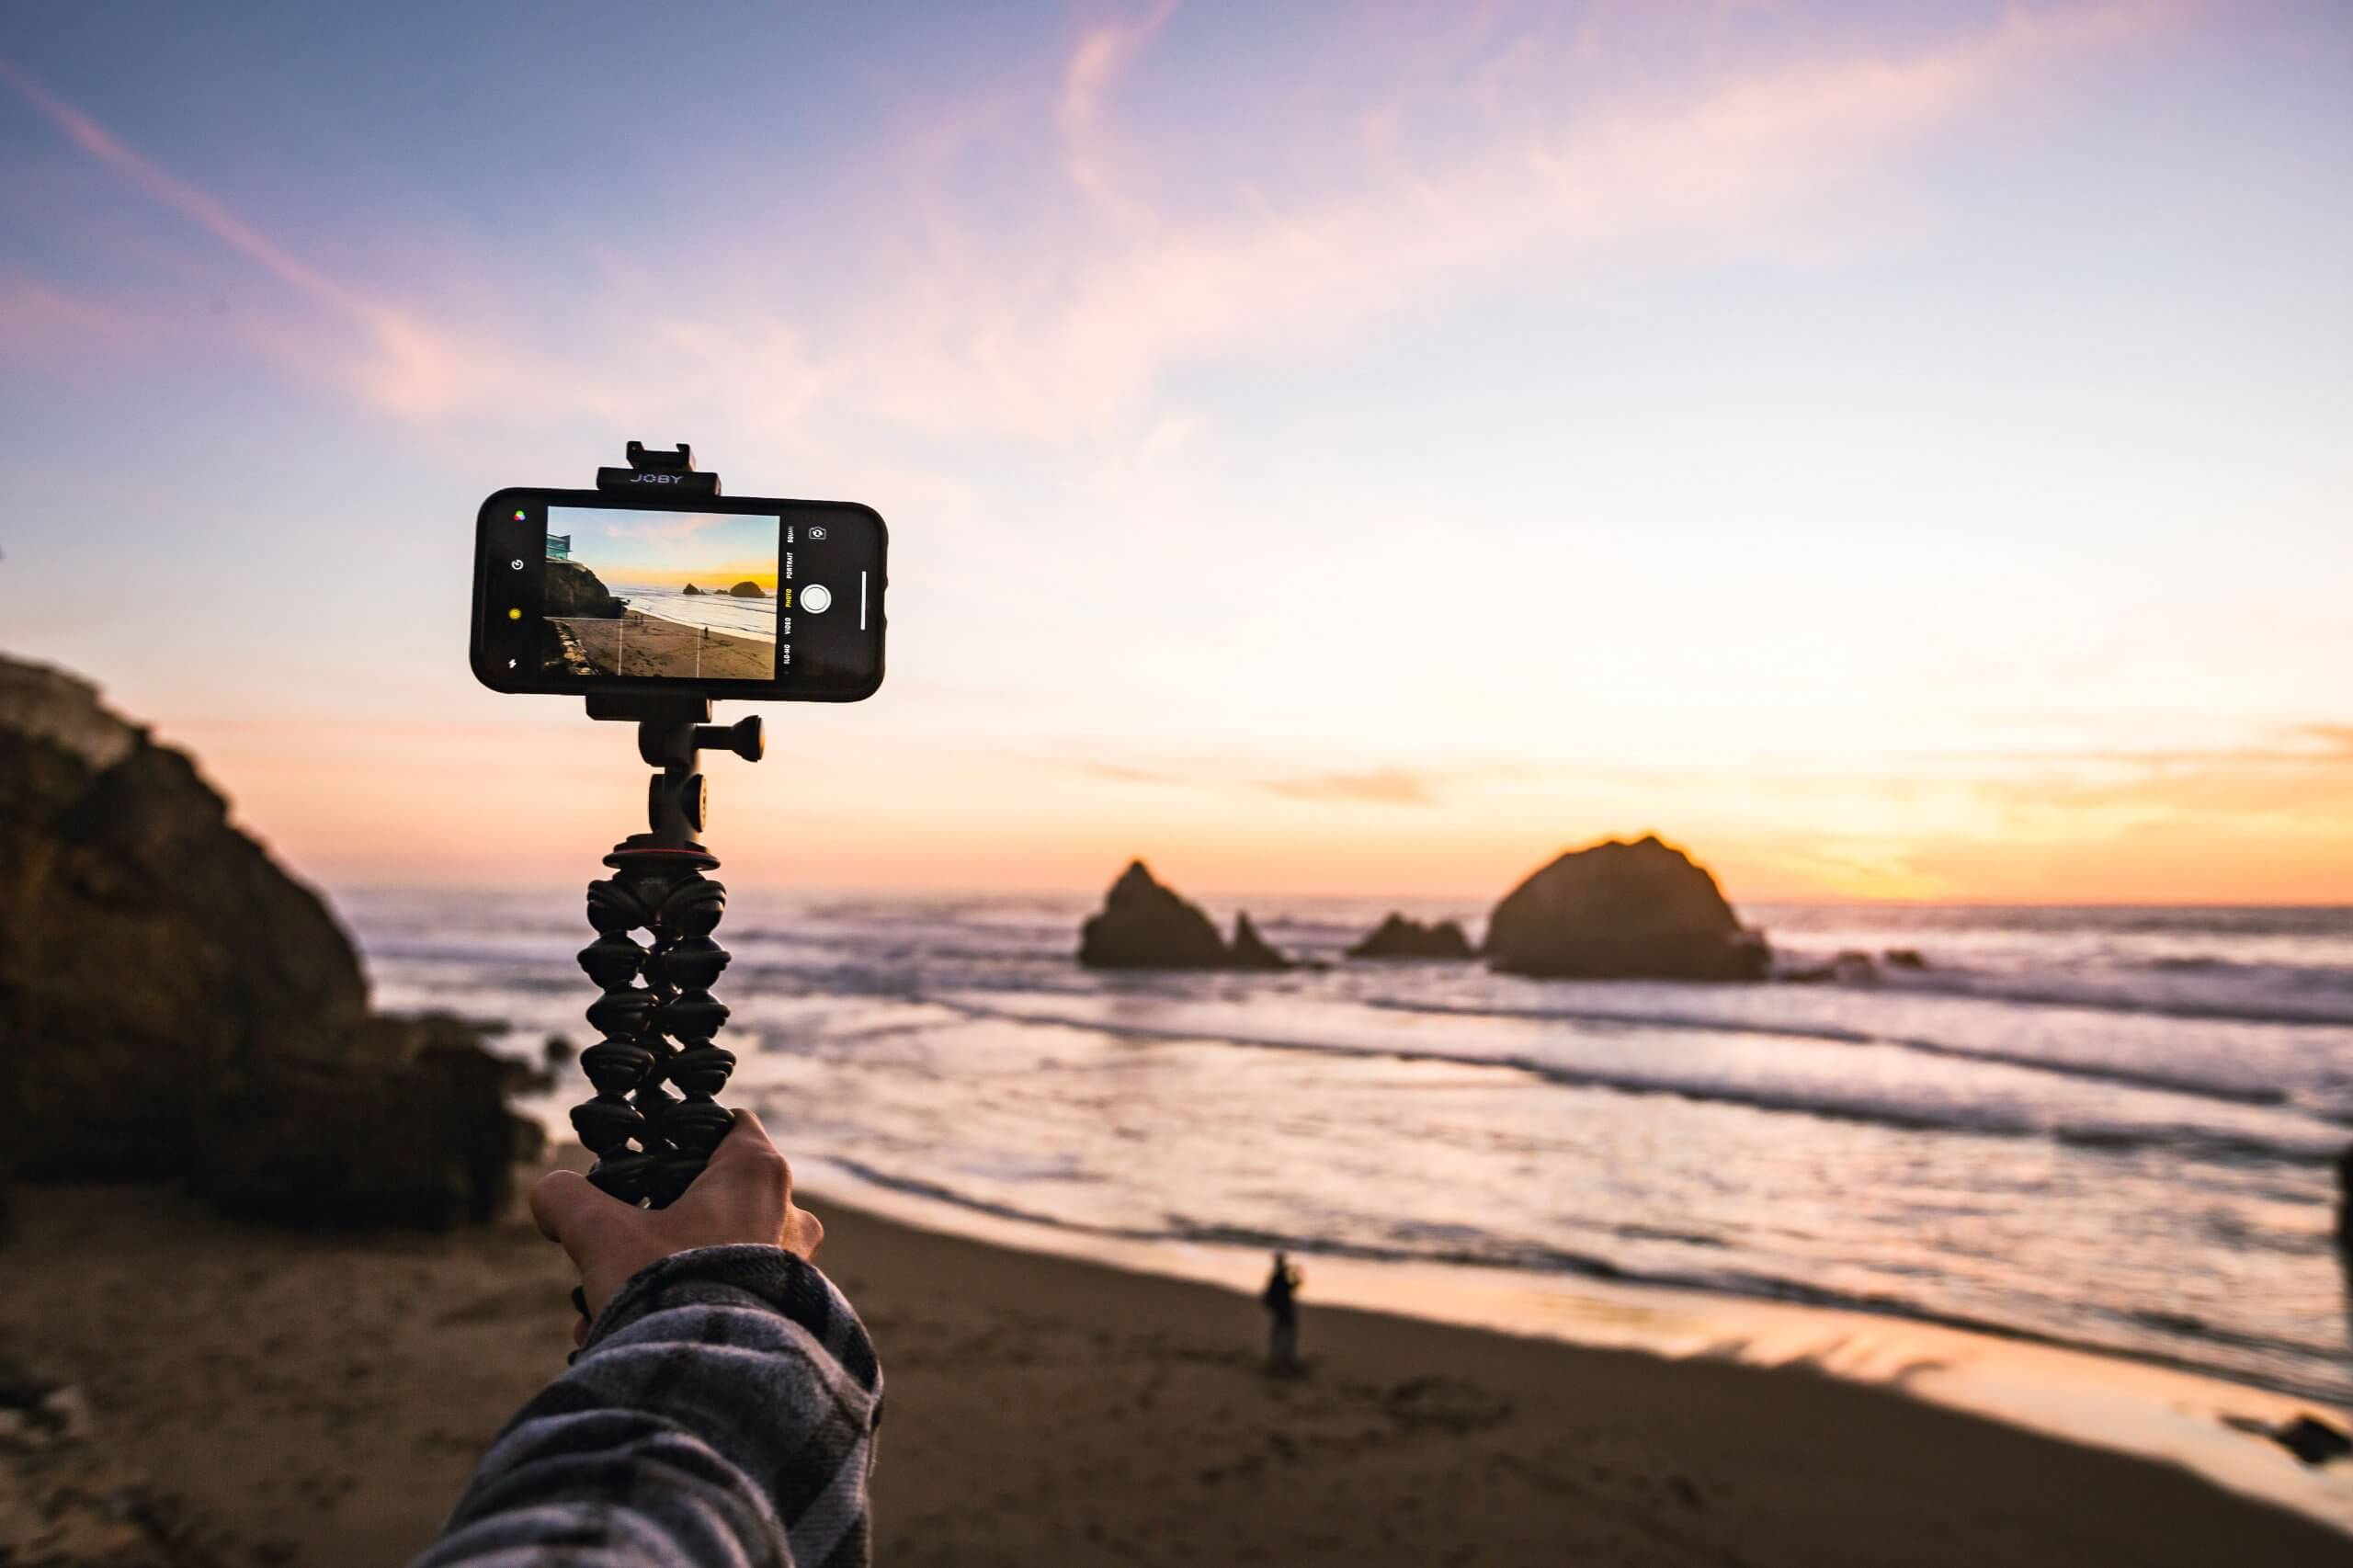 What GorillaPod Is Right For Your Phone?